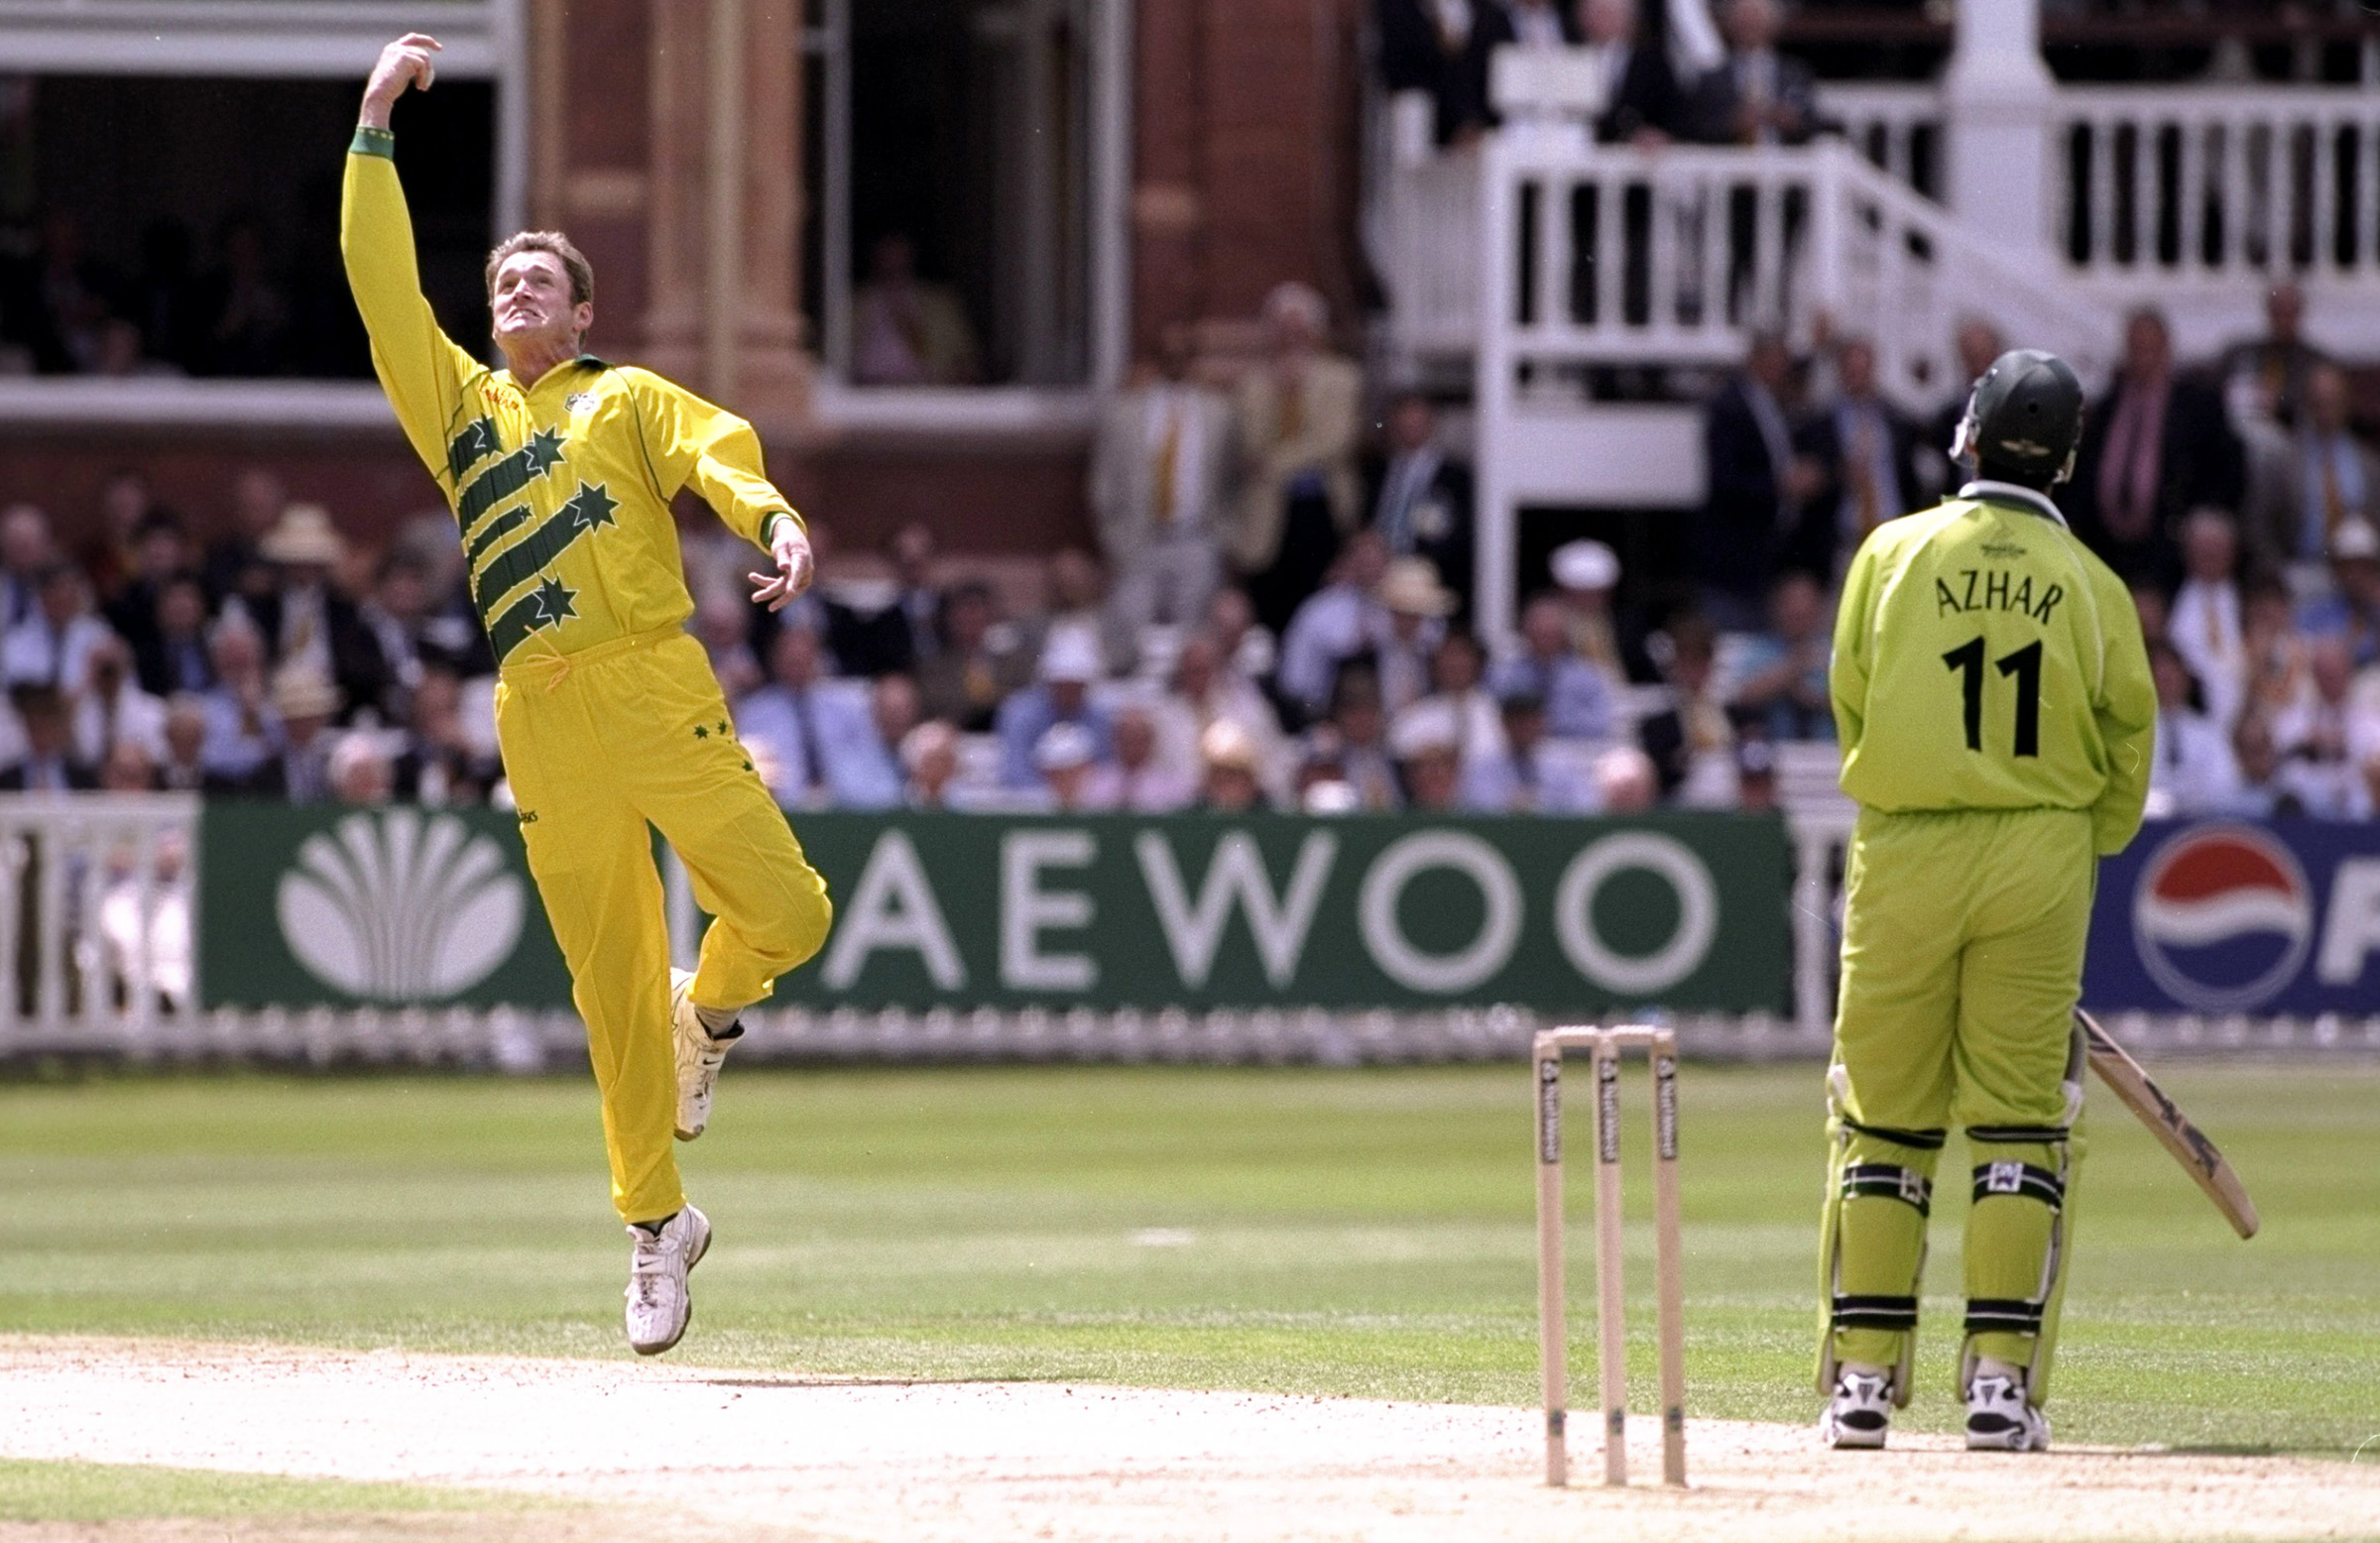 Moody played a crucial role in Australia 1999 Cup win // Getty